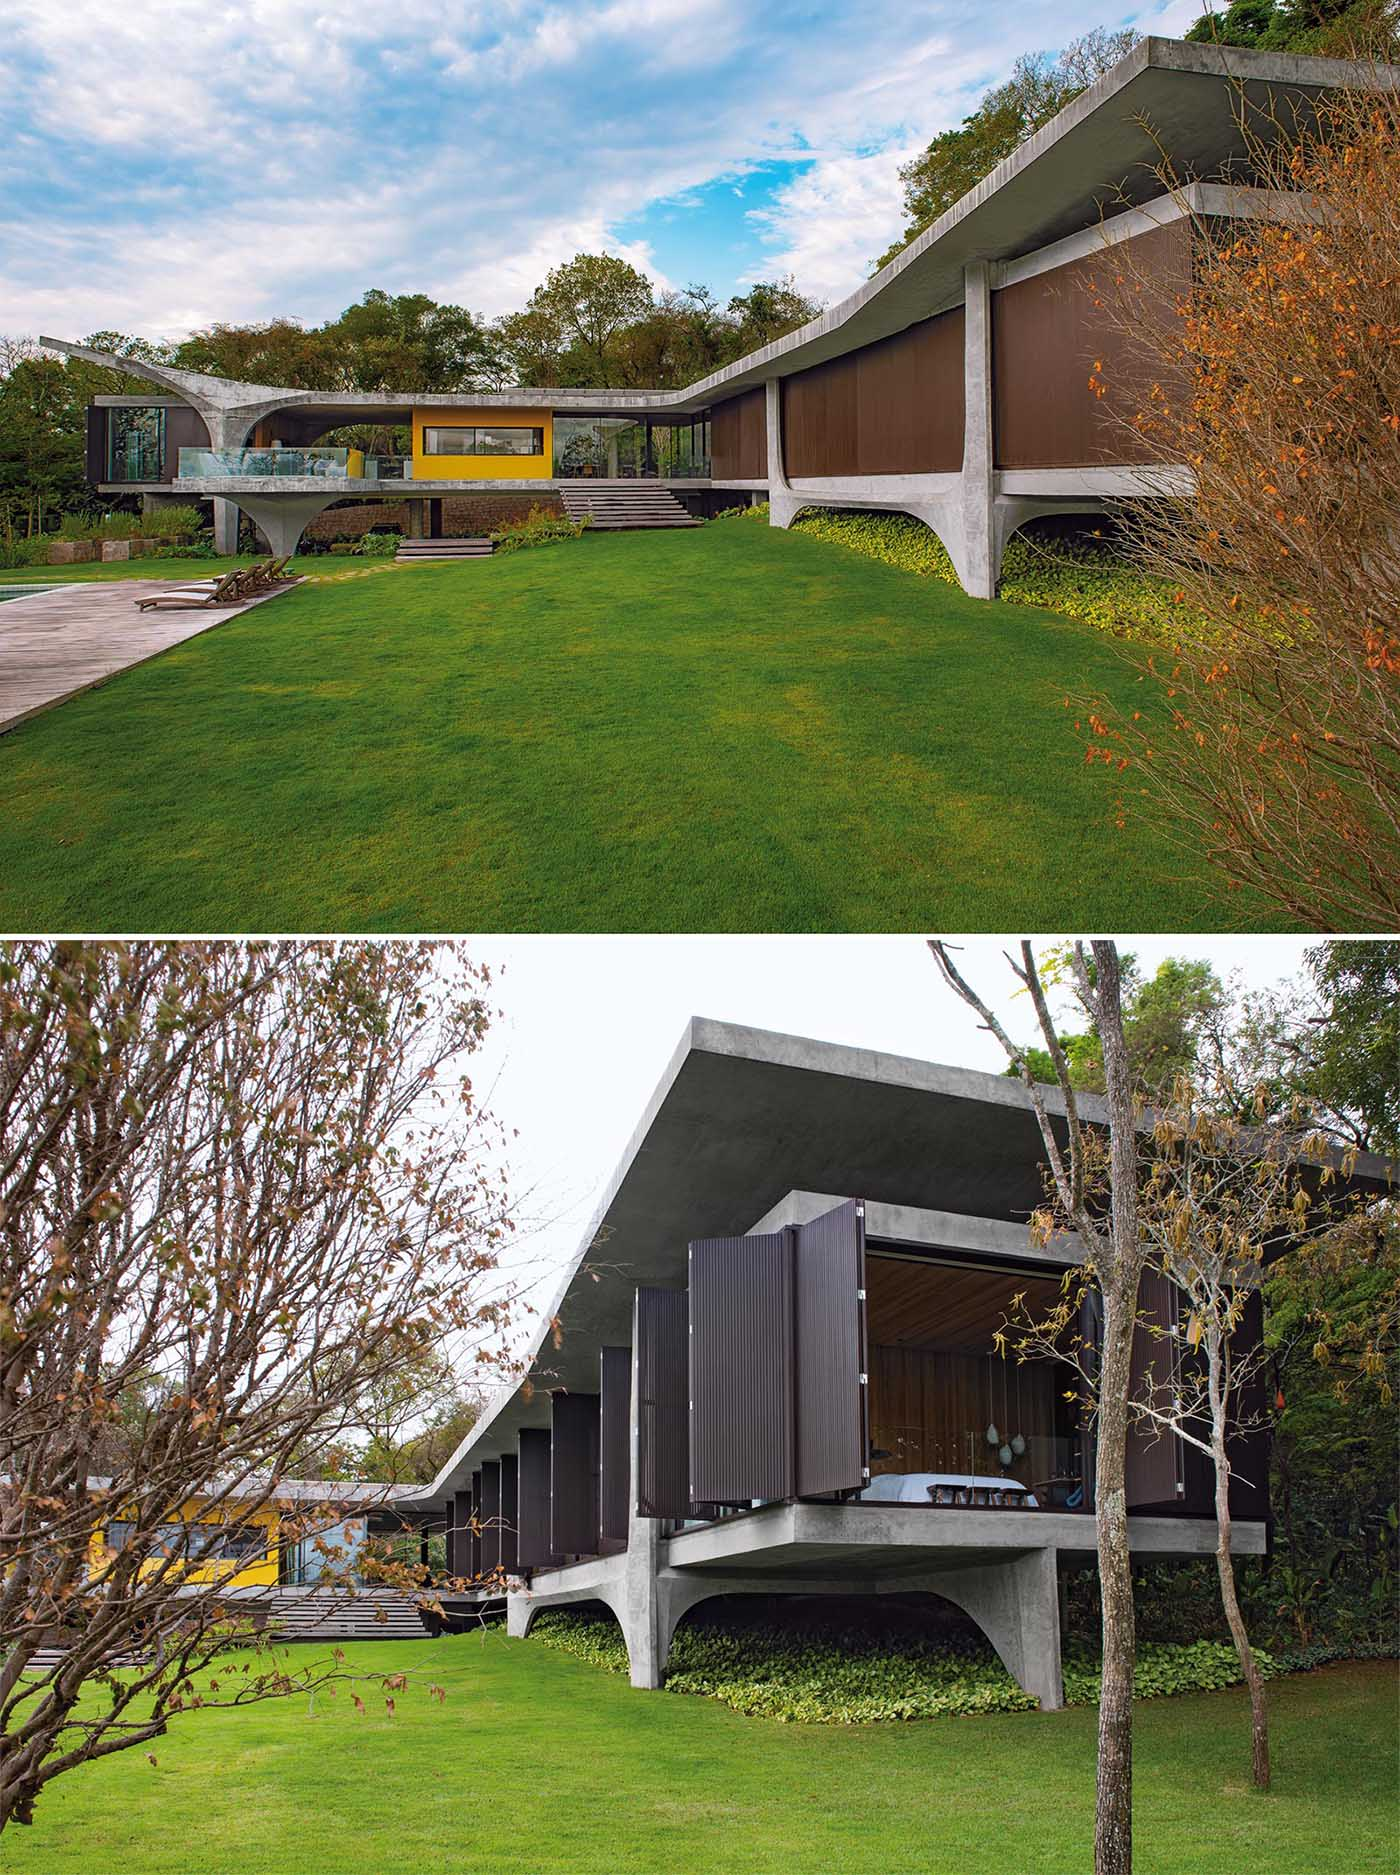 The design of this modern concrete house allows the form to somewhat appear as though it floats over the terrain, while the pillars add a sculptural element.